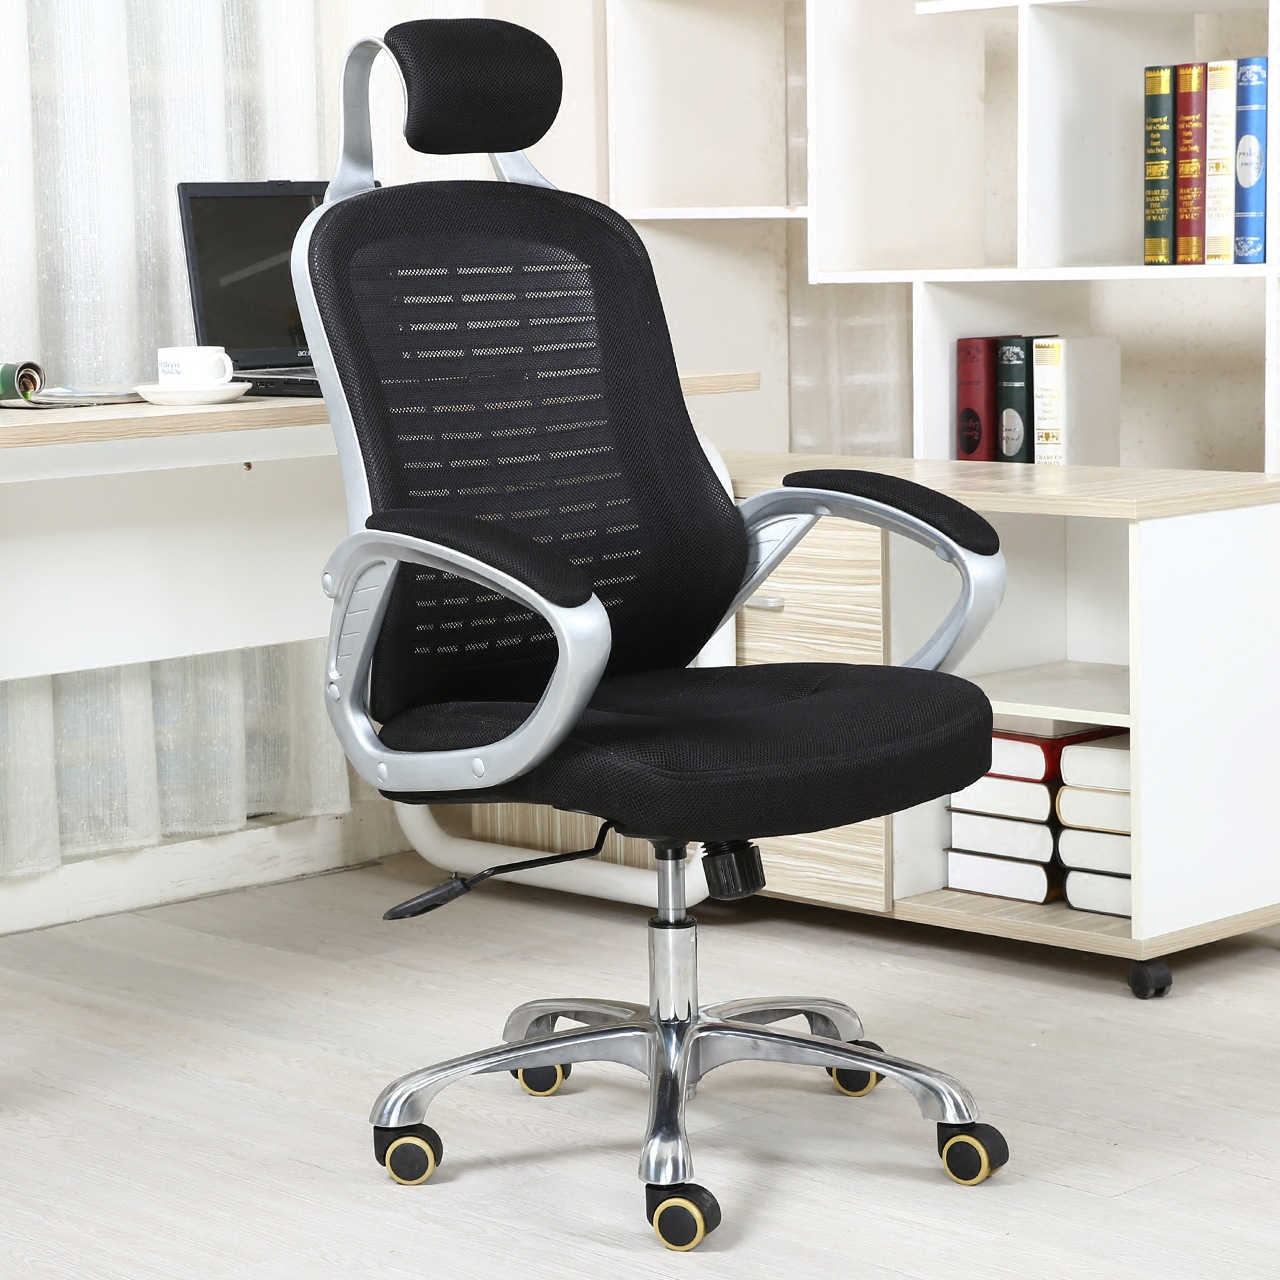 High Quality Simple Office Boss Chair Lifting Leisure Swivel Chair Ergonomic Computer Gaming Chair 240337 ergonomic chair quality pu wheel household office chair computer chair 3d thick cushion high breathable mesh